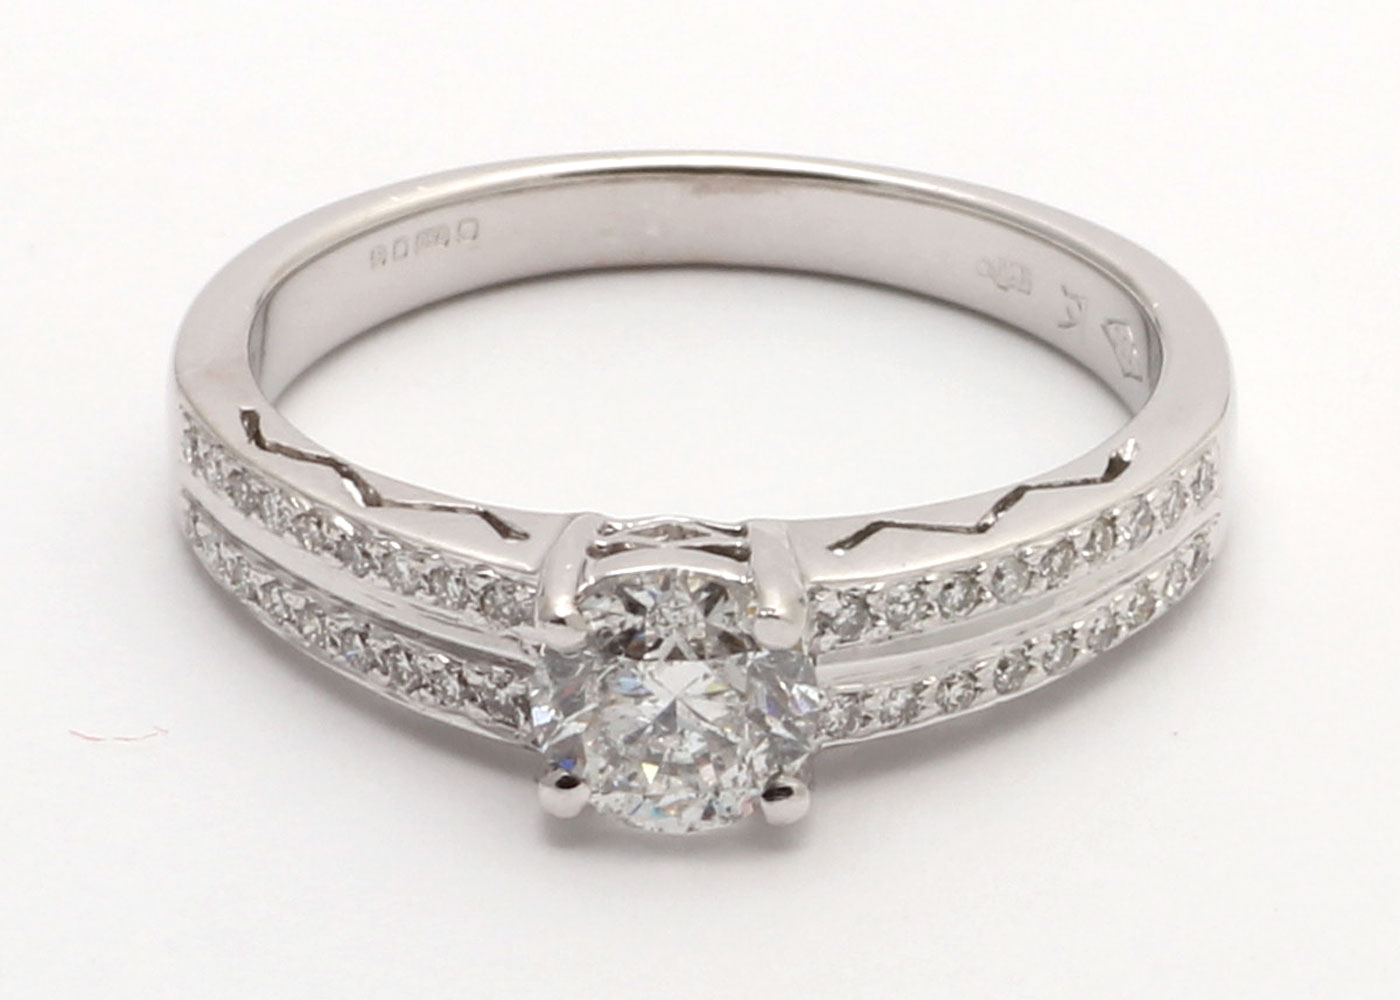 18ct White Gold Diamond Ring With Double Chanel Set Shoulders 0.83 Carats - Image 5 of 6